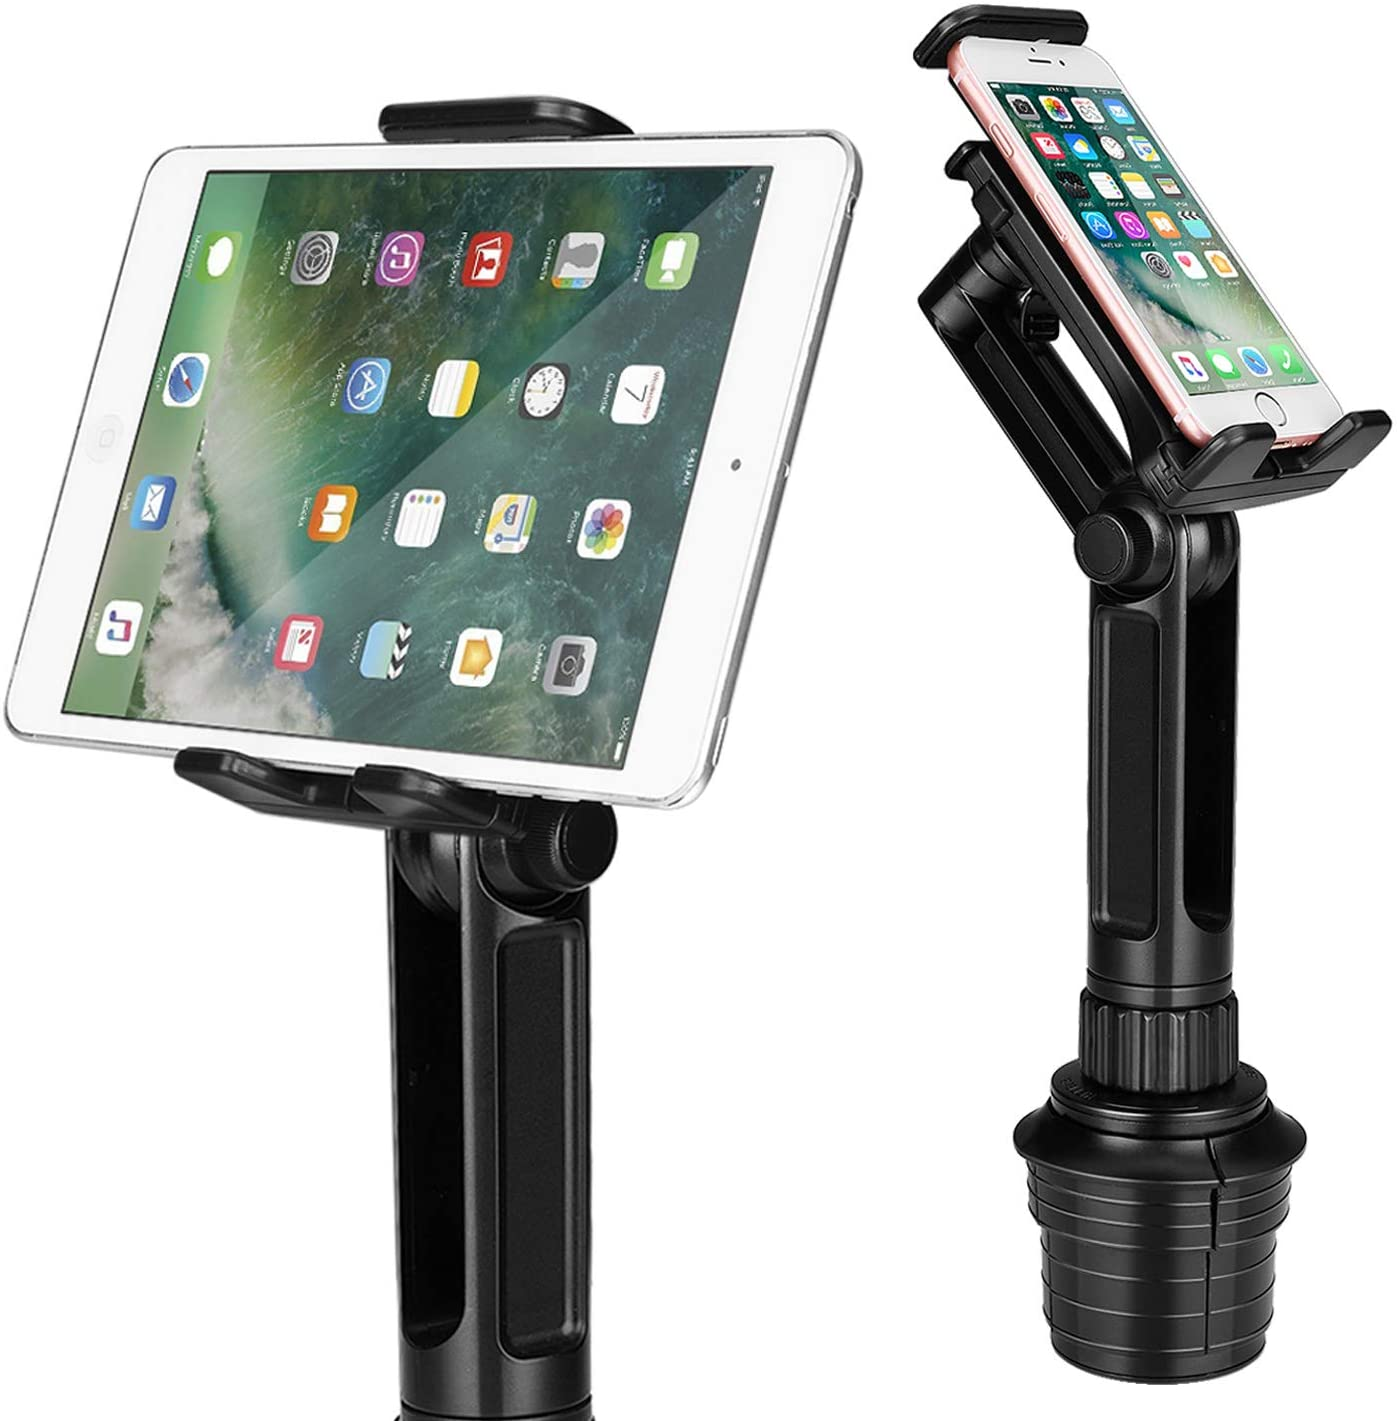 TNP Cup Mount Holder for Tablet and Smartphone, Universal Car Cup iPad Mount w/Swivel Arm Extendable Clamp for Devices with 4-10.5 inch Display, Ideal for Apple iPad iPhone Samsung Uber Lyft Drivers